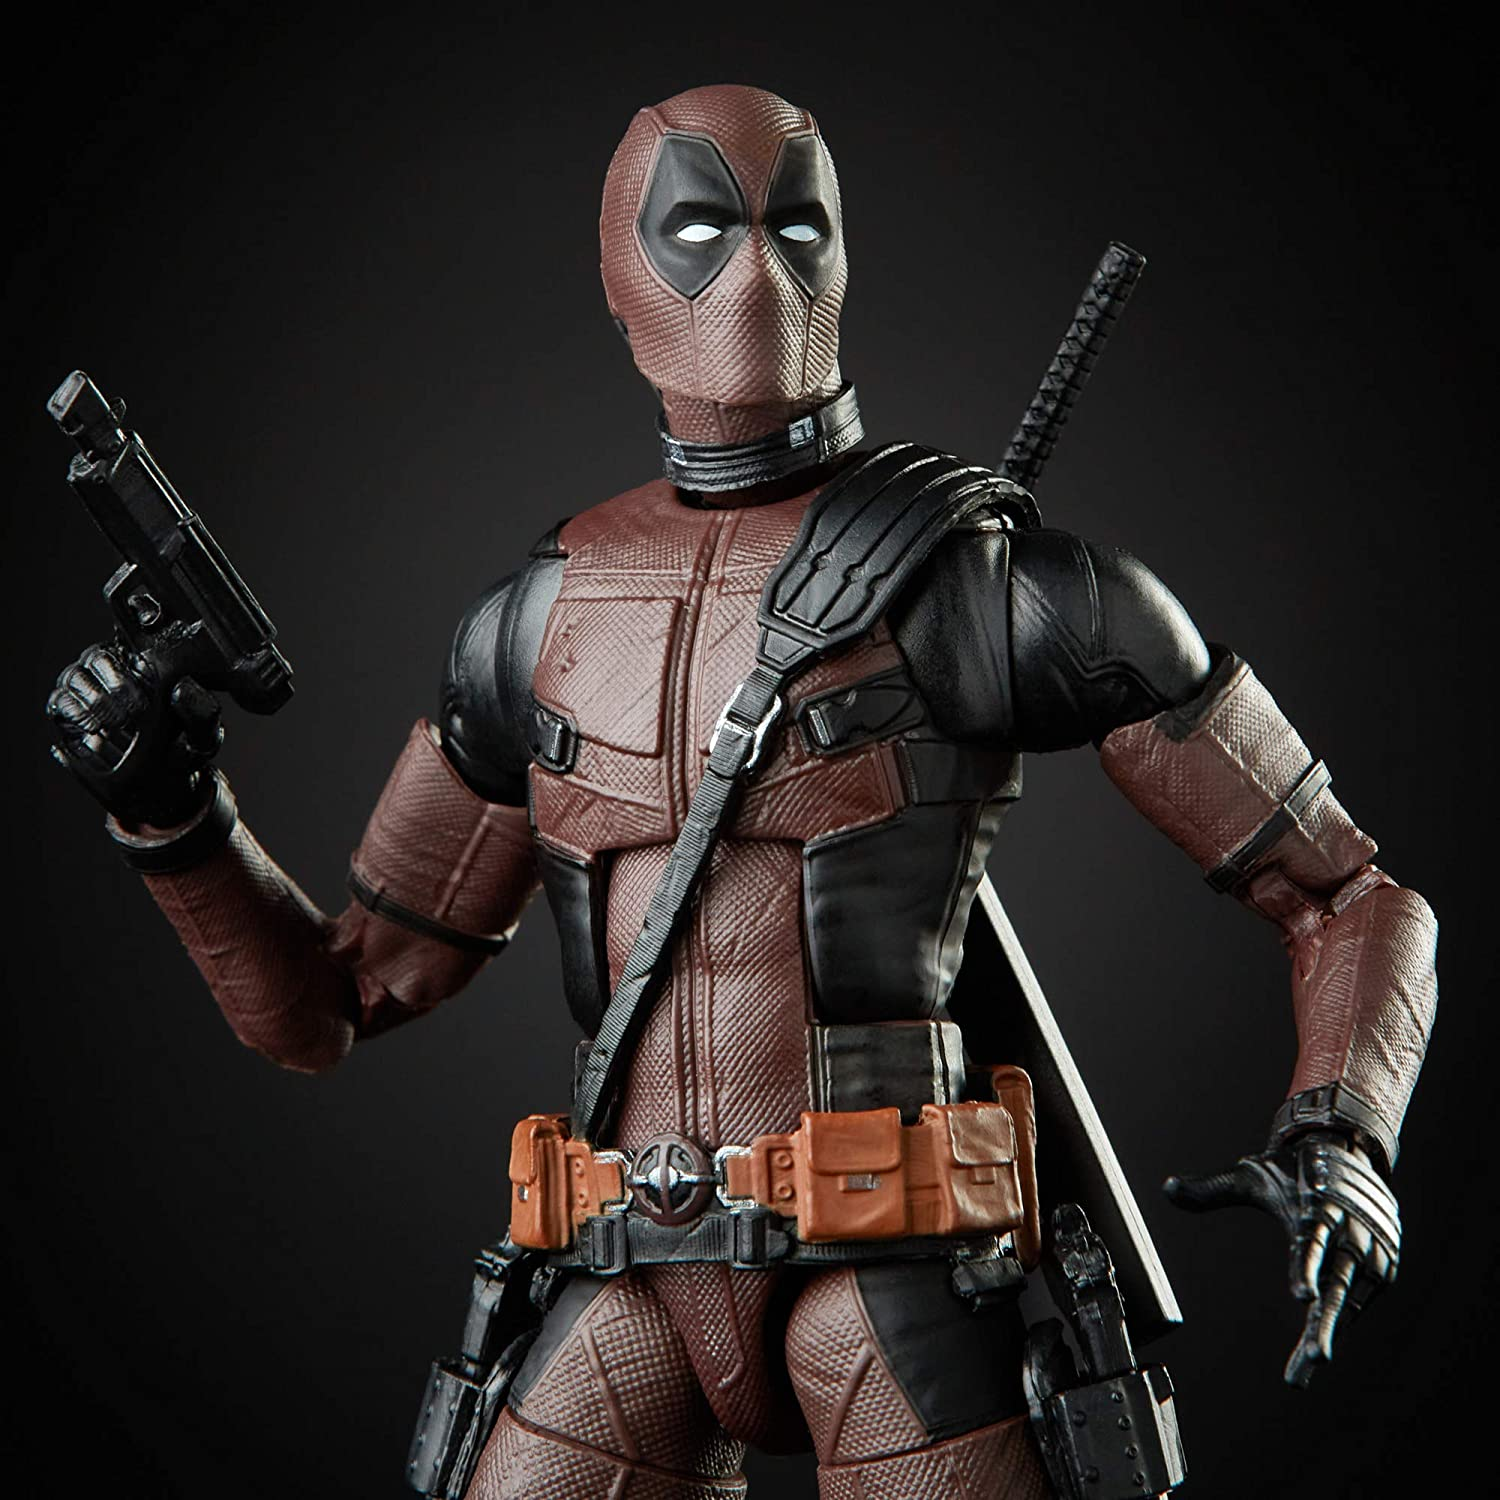 Hasbro Marvel Legends Series 6-inch Premium Deadpool Action Figure Toy From Deadpool 2 Movie and 11 Accessories For Ages 14 and Up